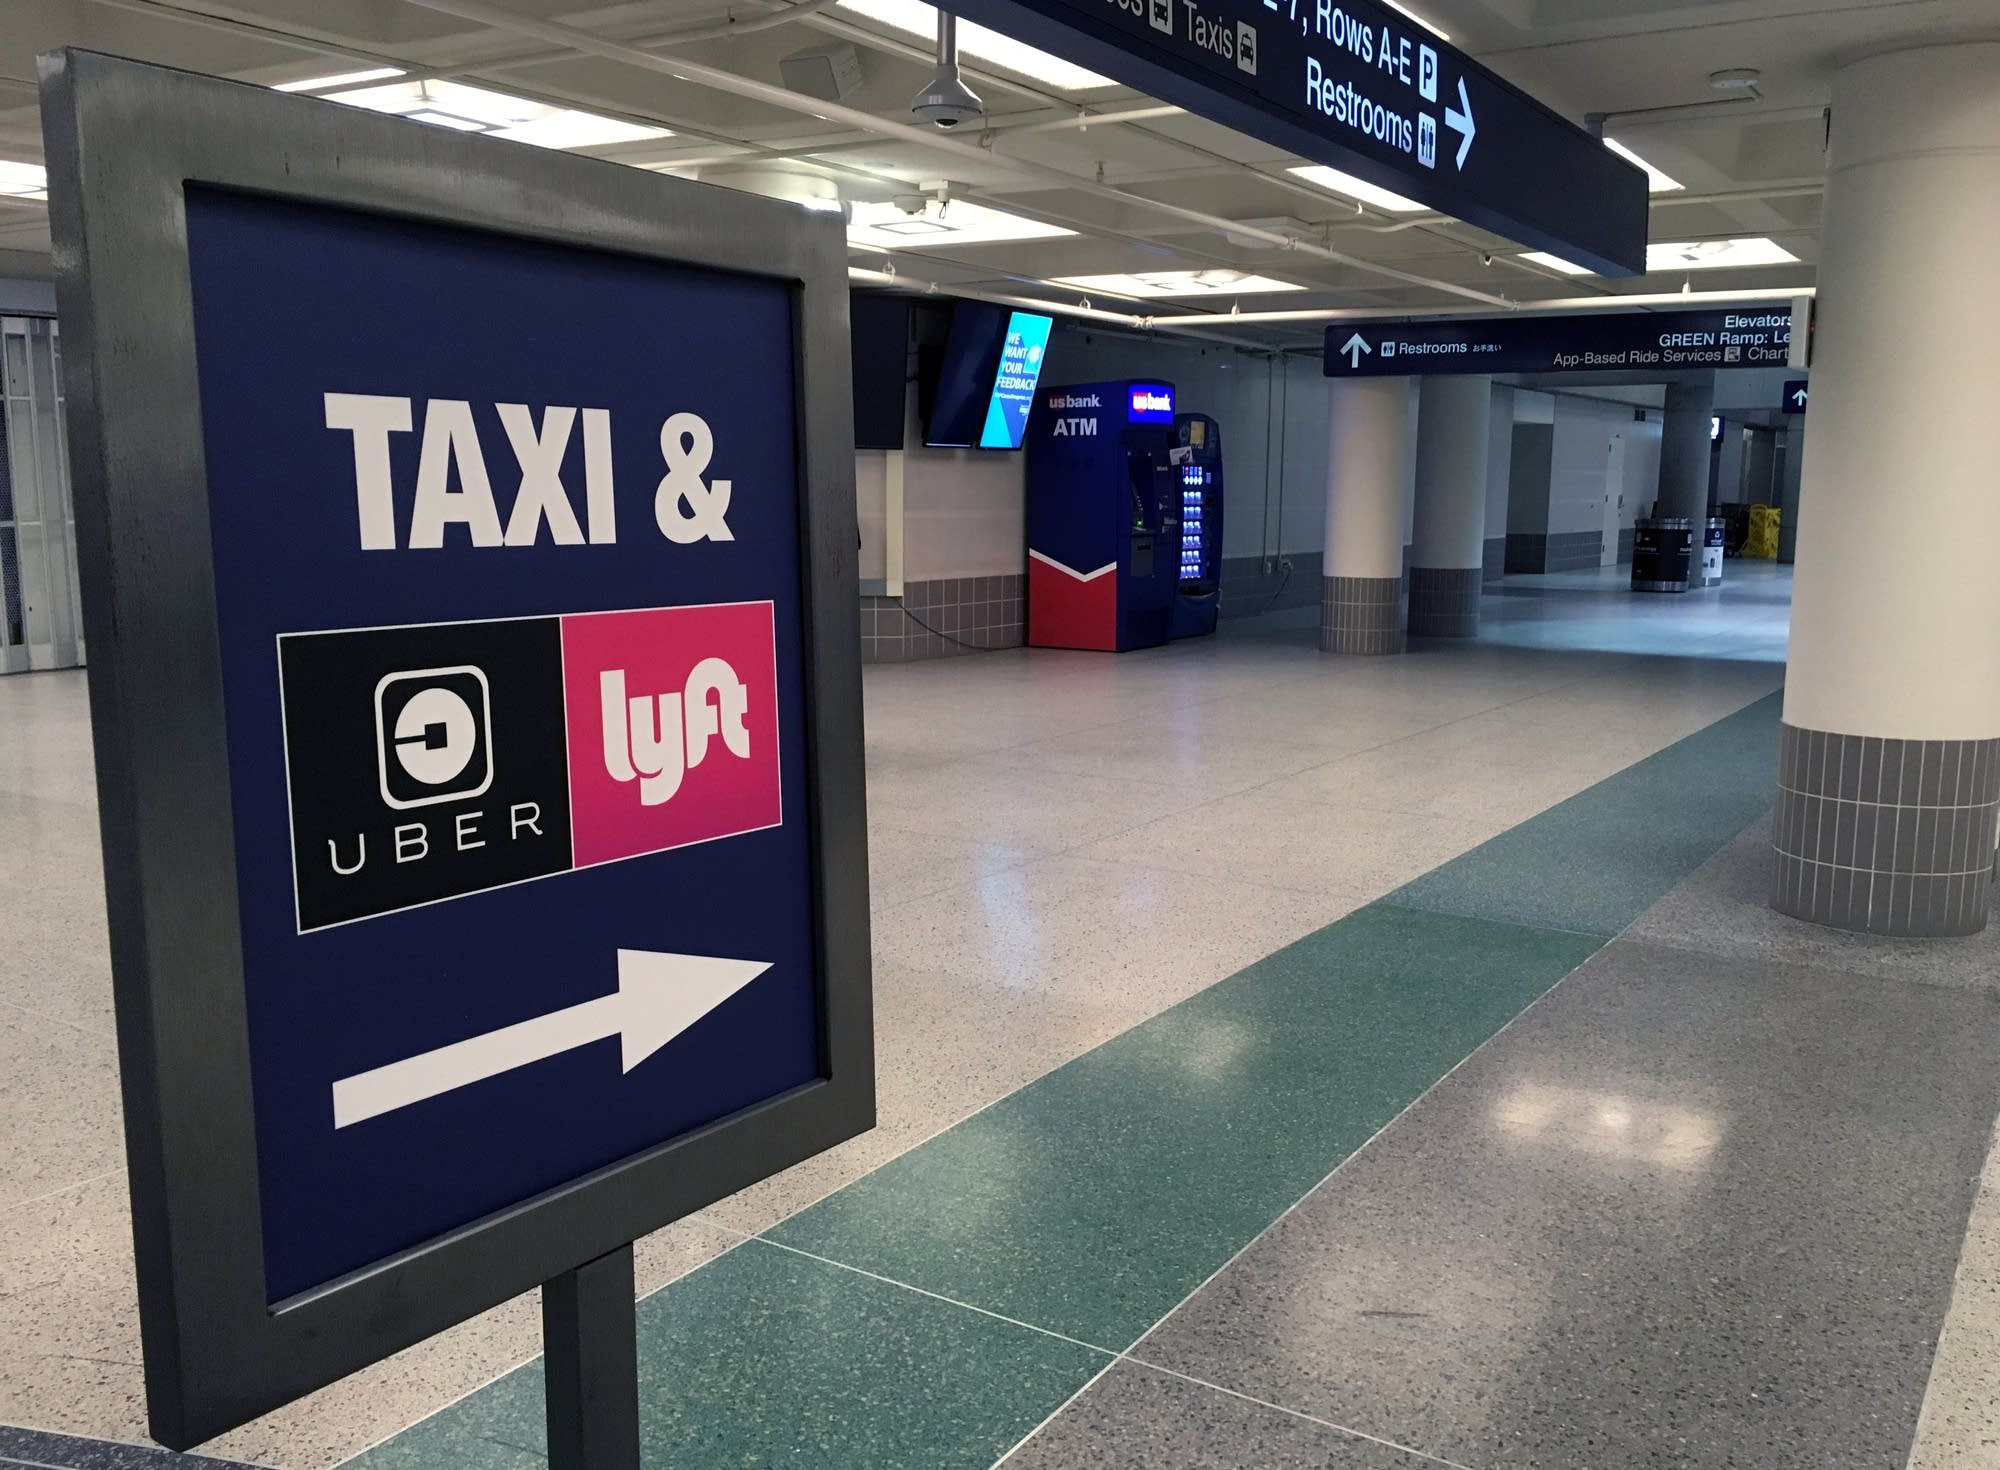 Signs at MSP terminal direct people to both taxis and ride shares.